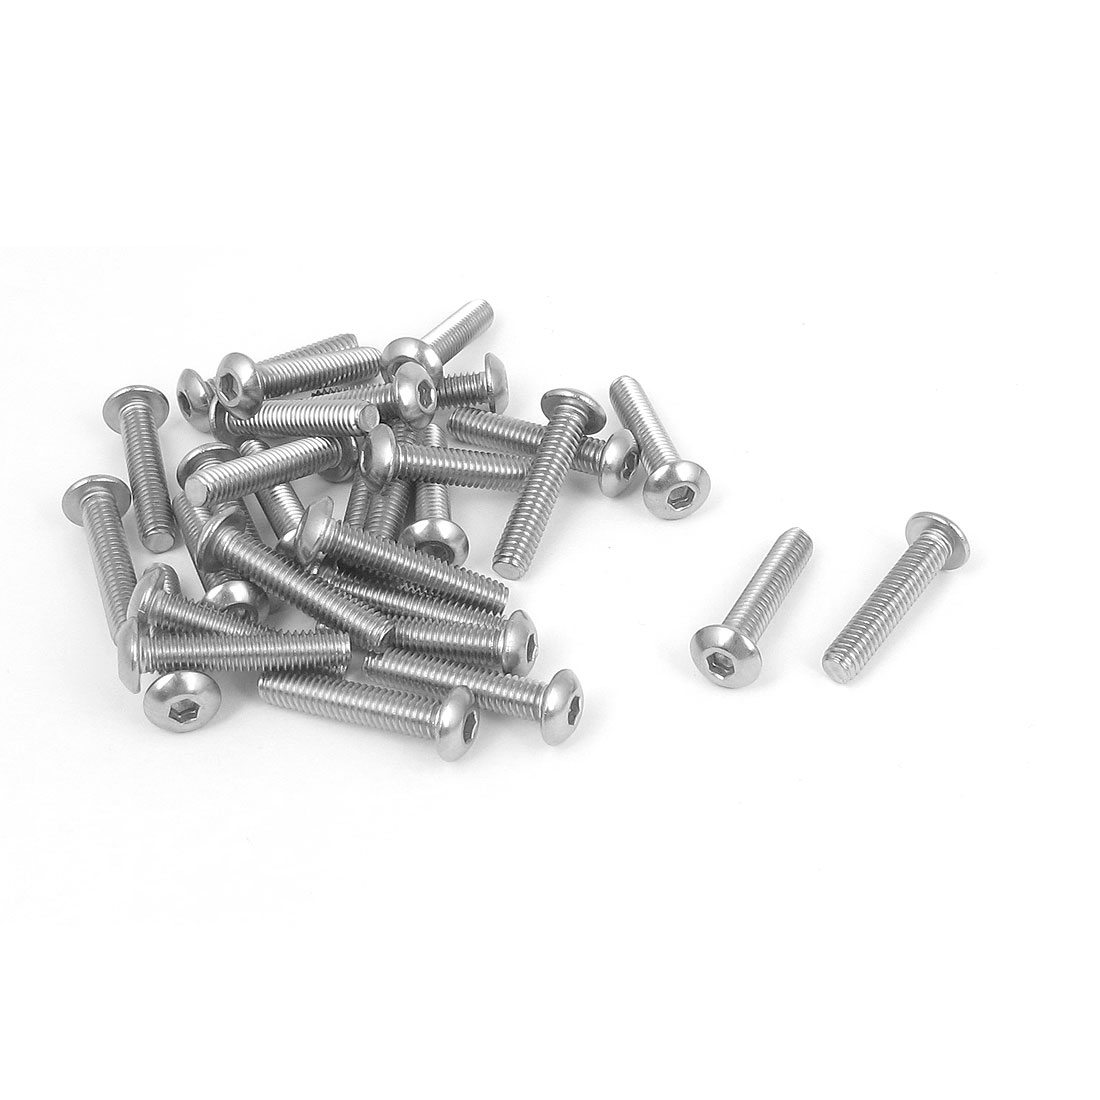 M4x20mm 304 Stainless Steel Hex Socket Machine Countersunk Round Head Screw Bolts 30PCS